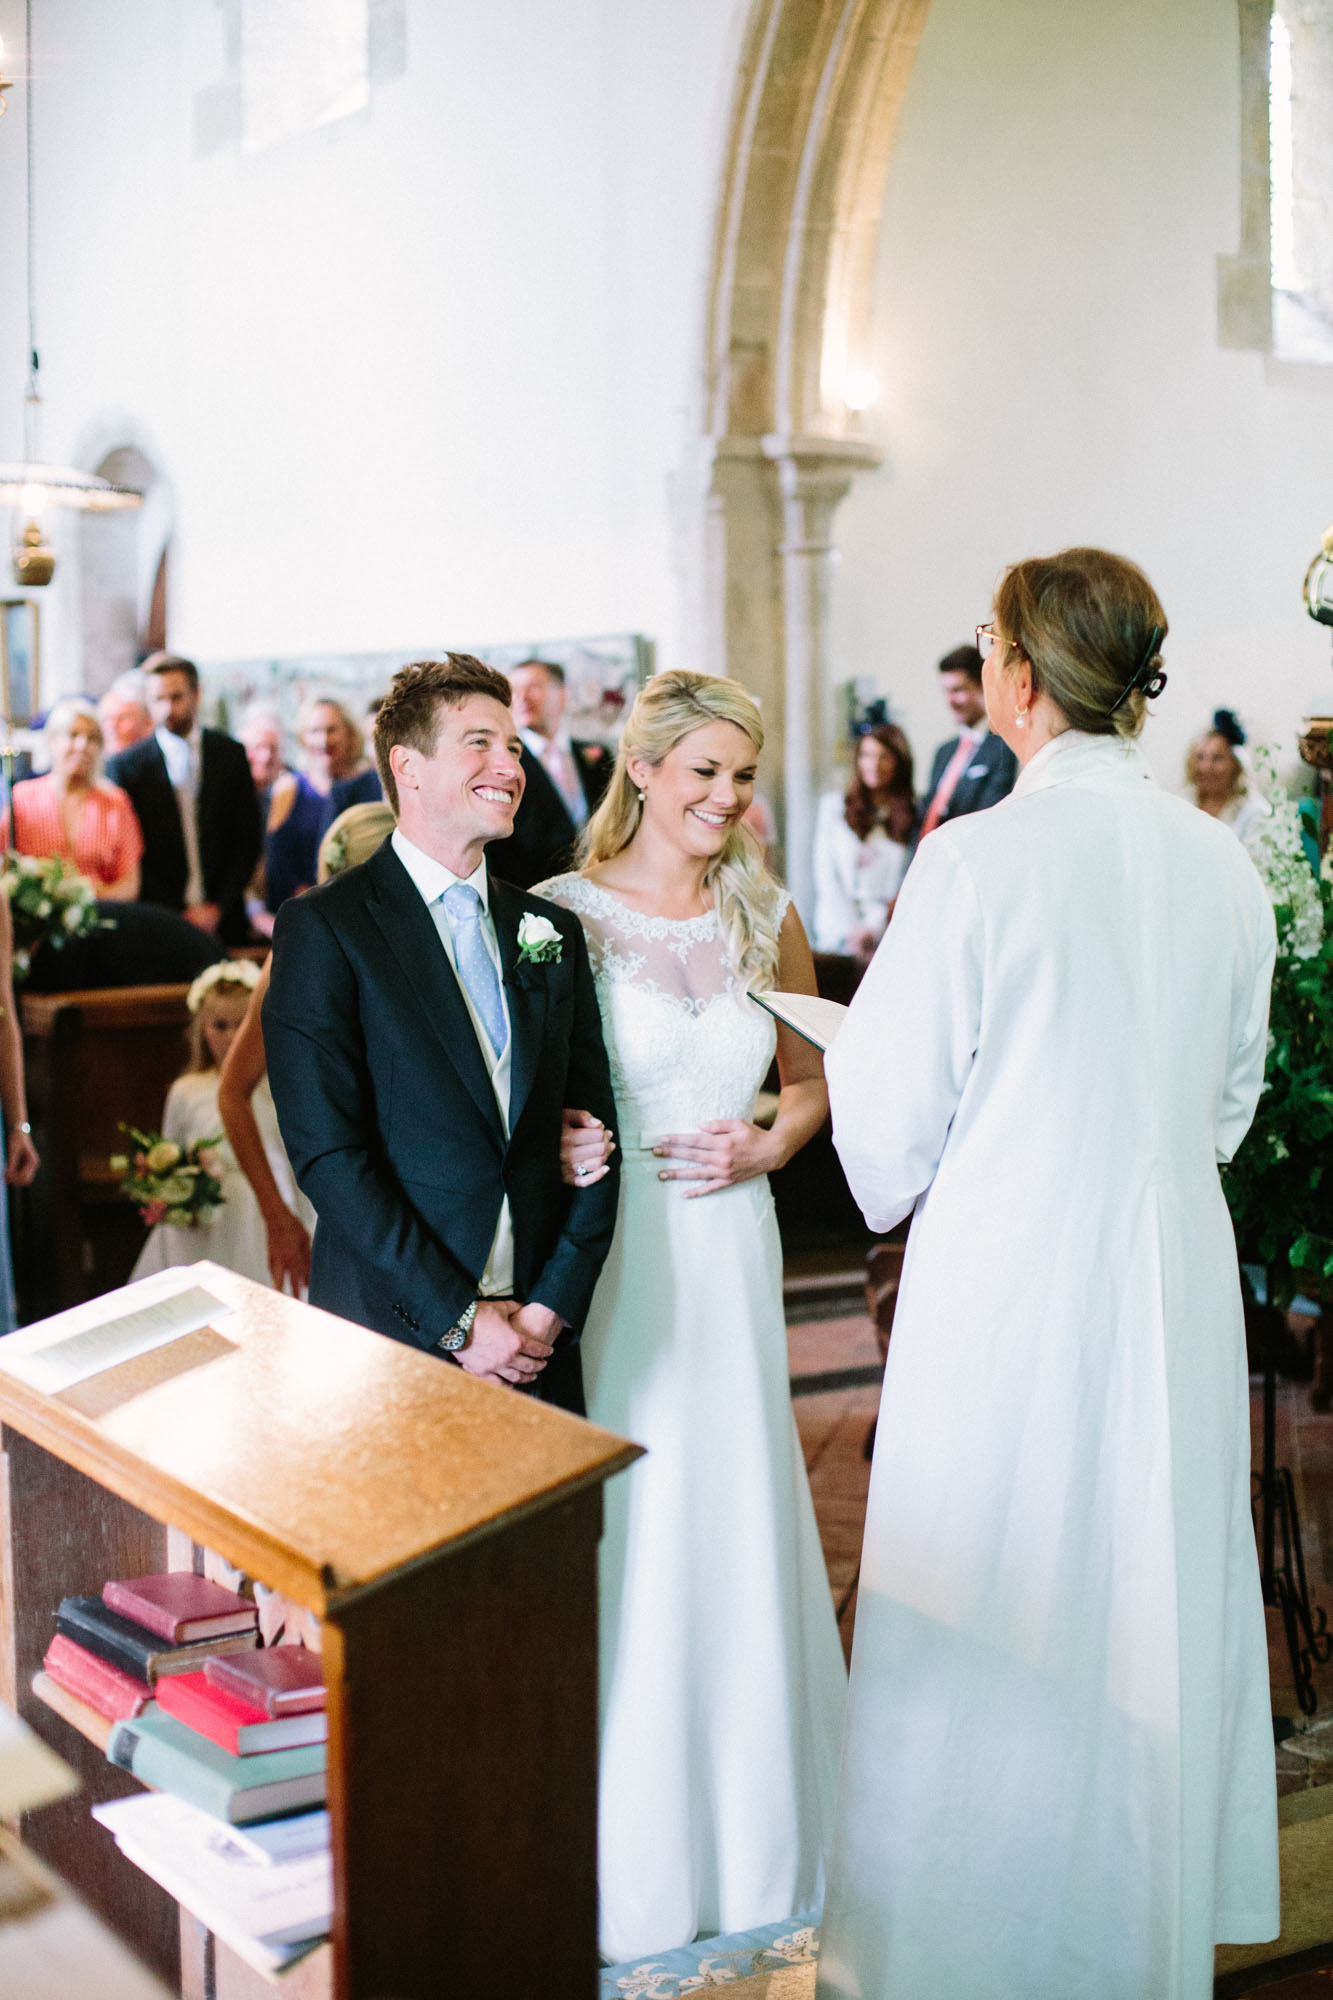 Bride and groom smiling at the front of the church during wedding ceremony